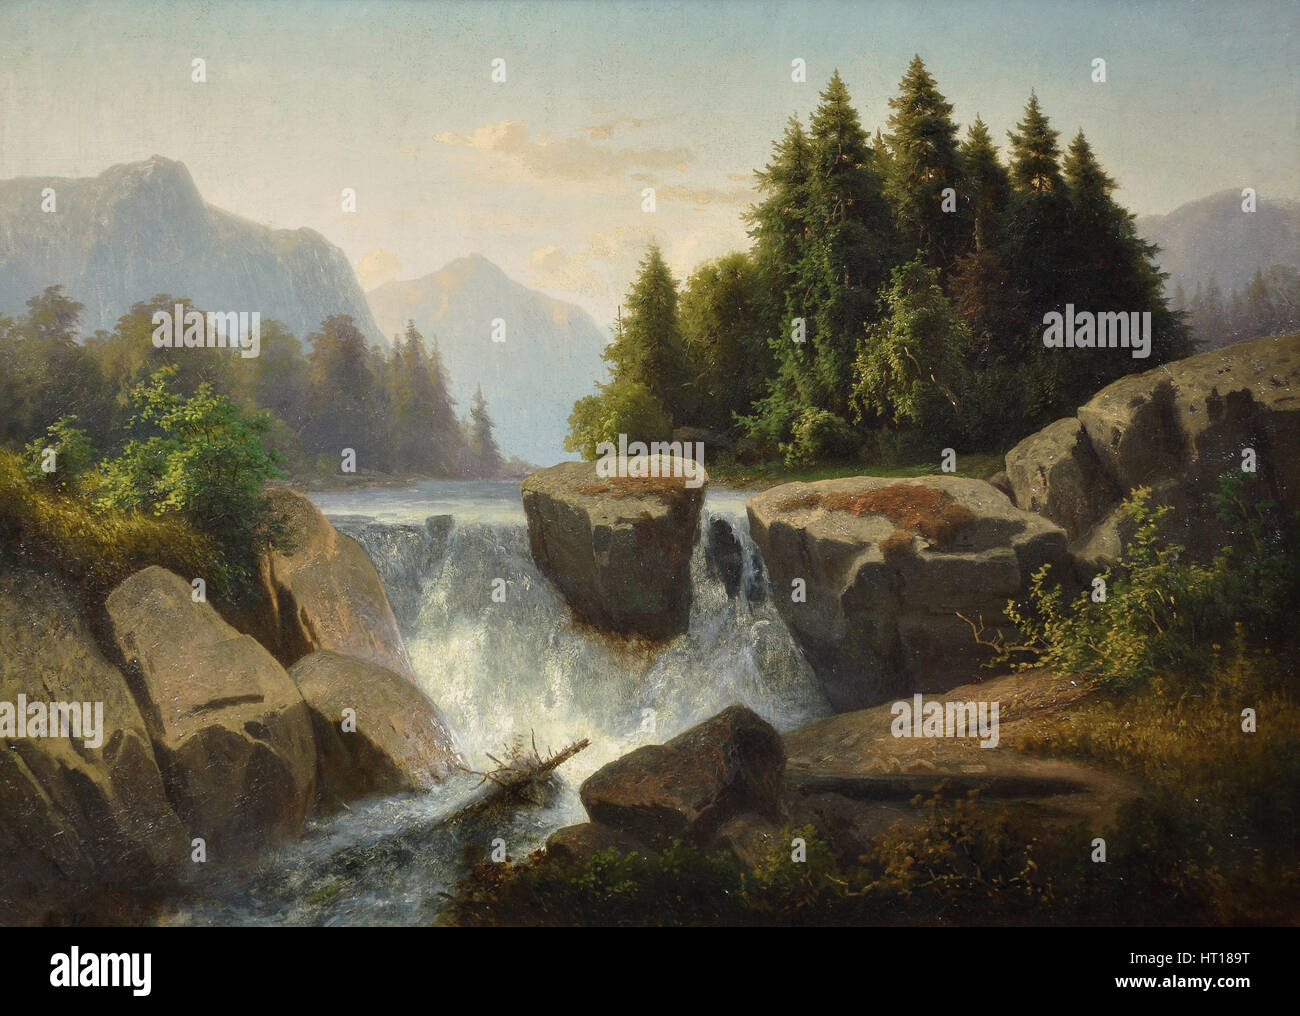 Mountain landscape with waterfall, c. 1853. Artist: Kosárek, Adolf (1830-1859) - Stock Image